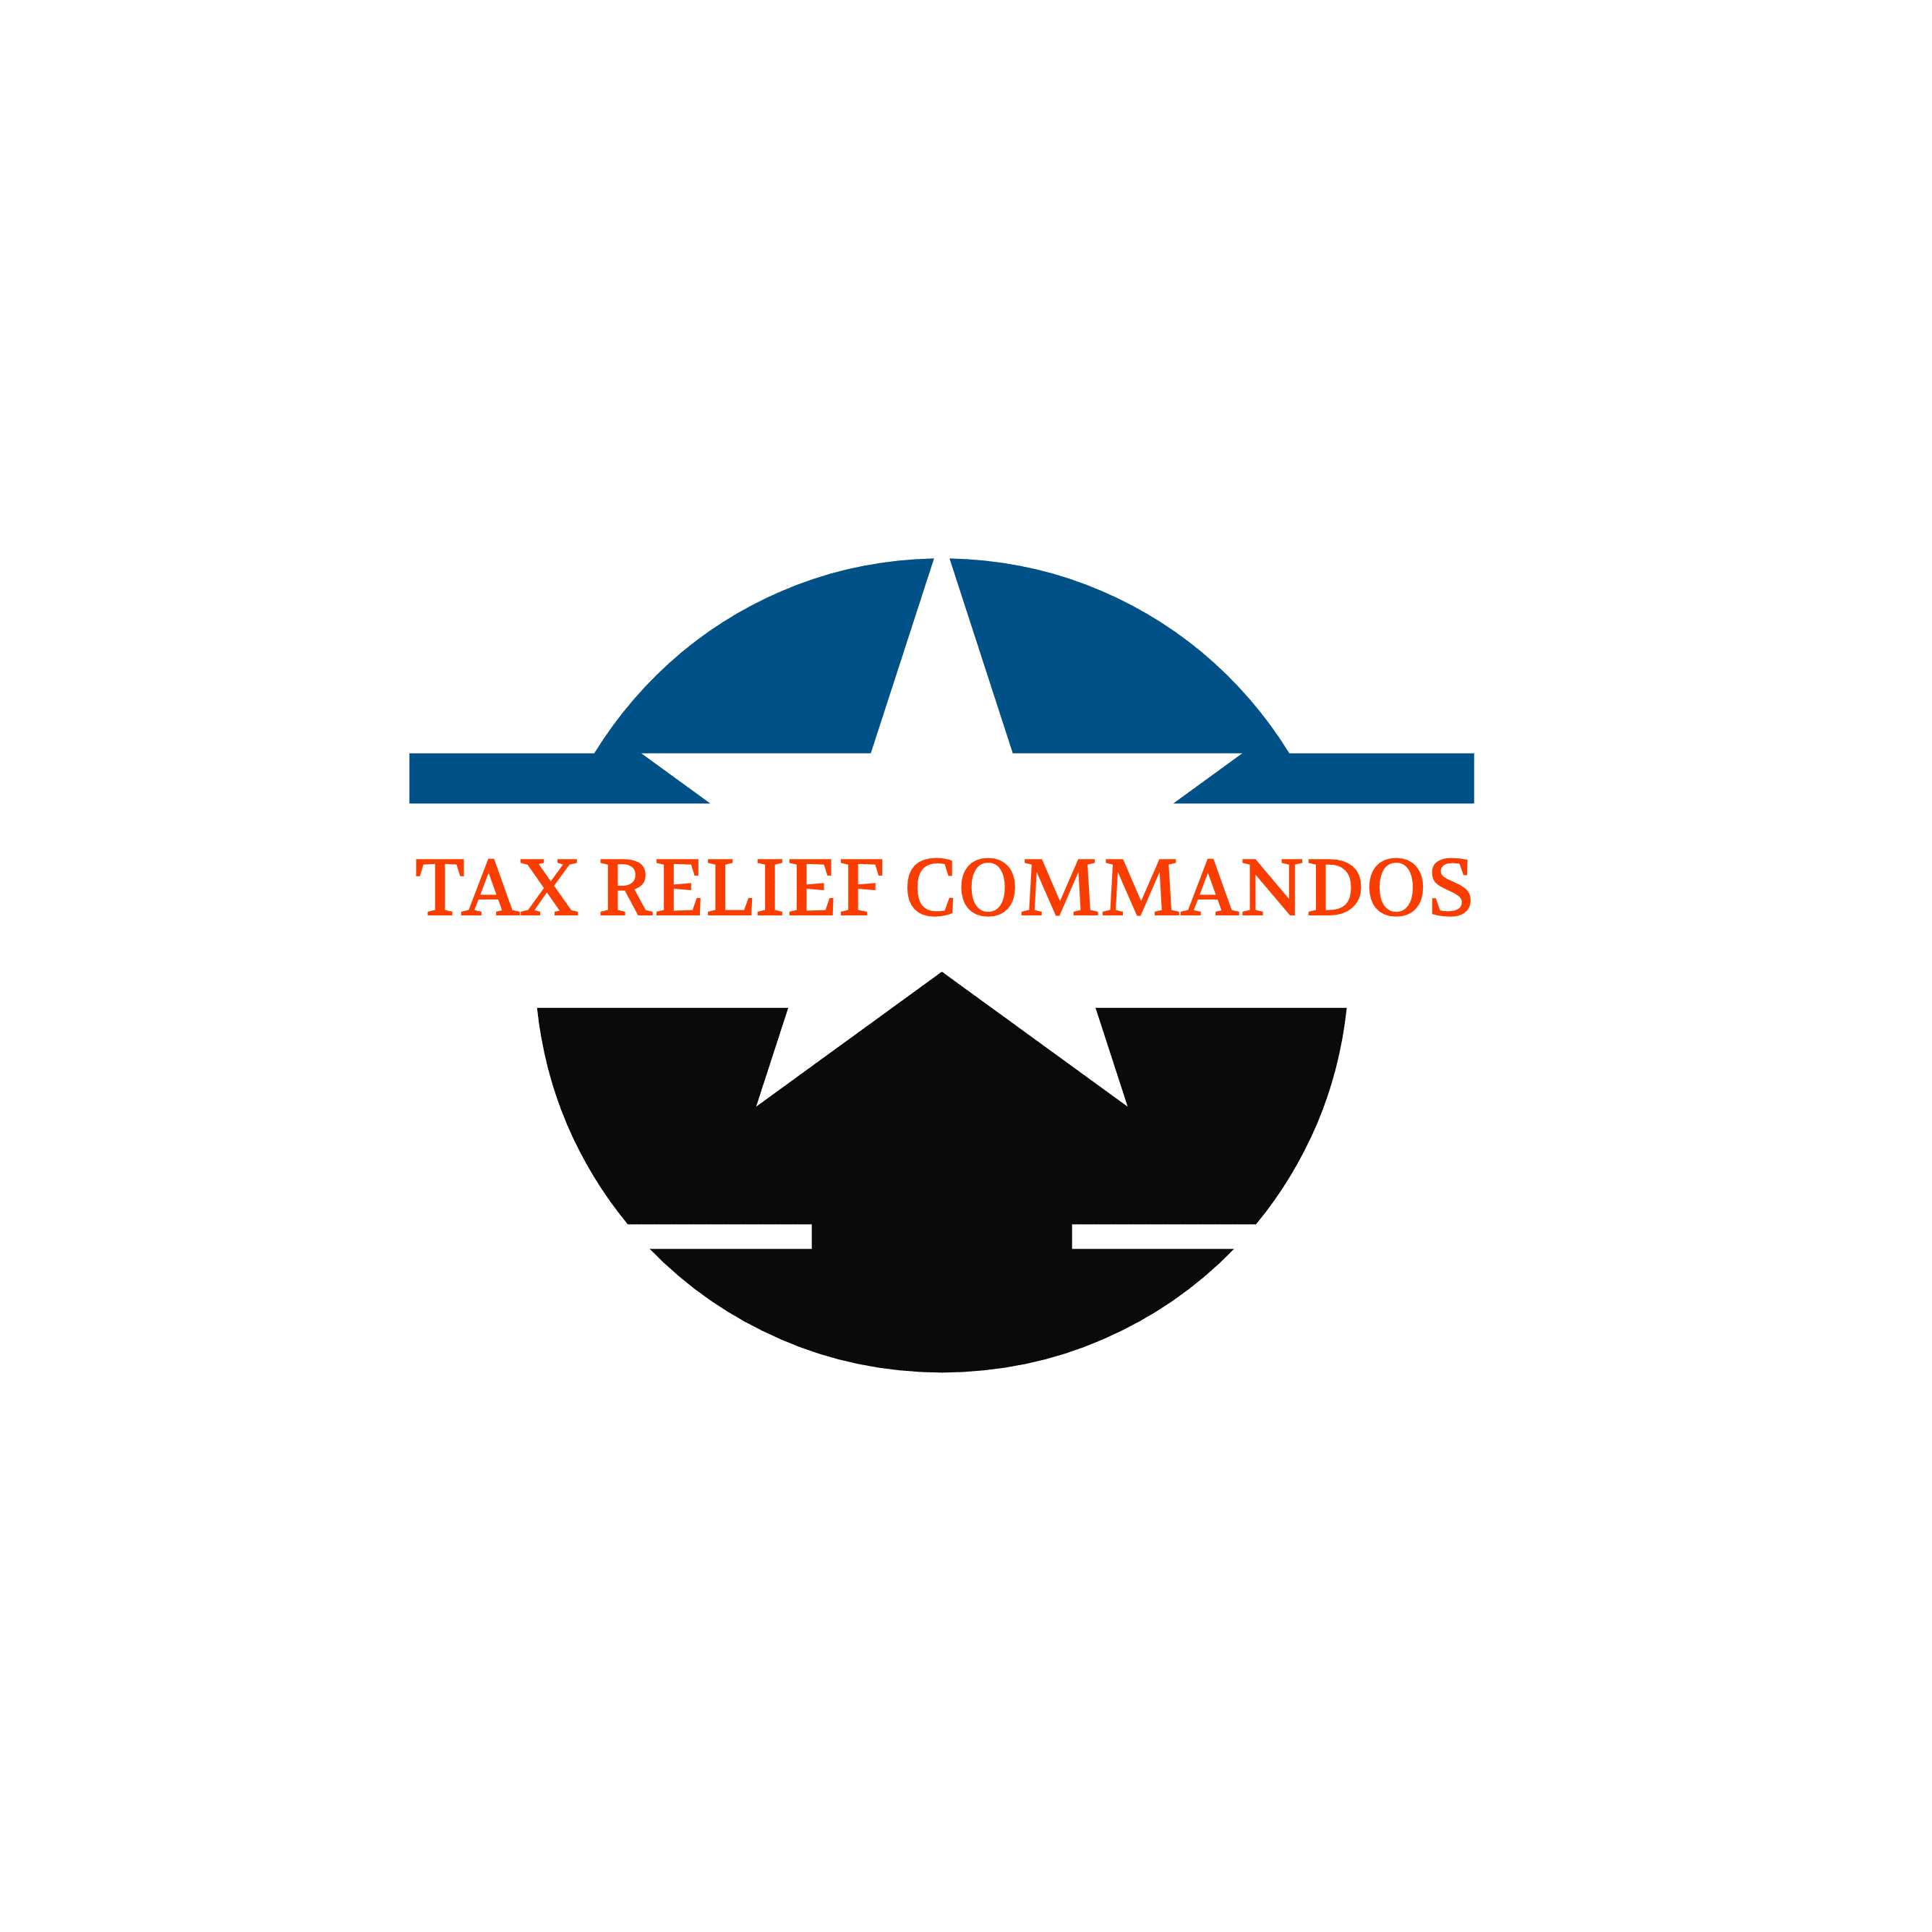 Tax Relief Commandos